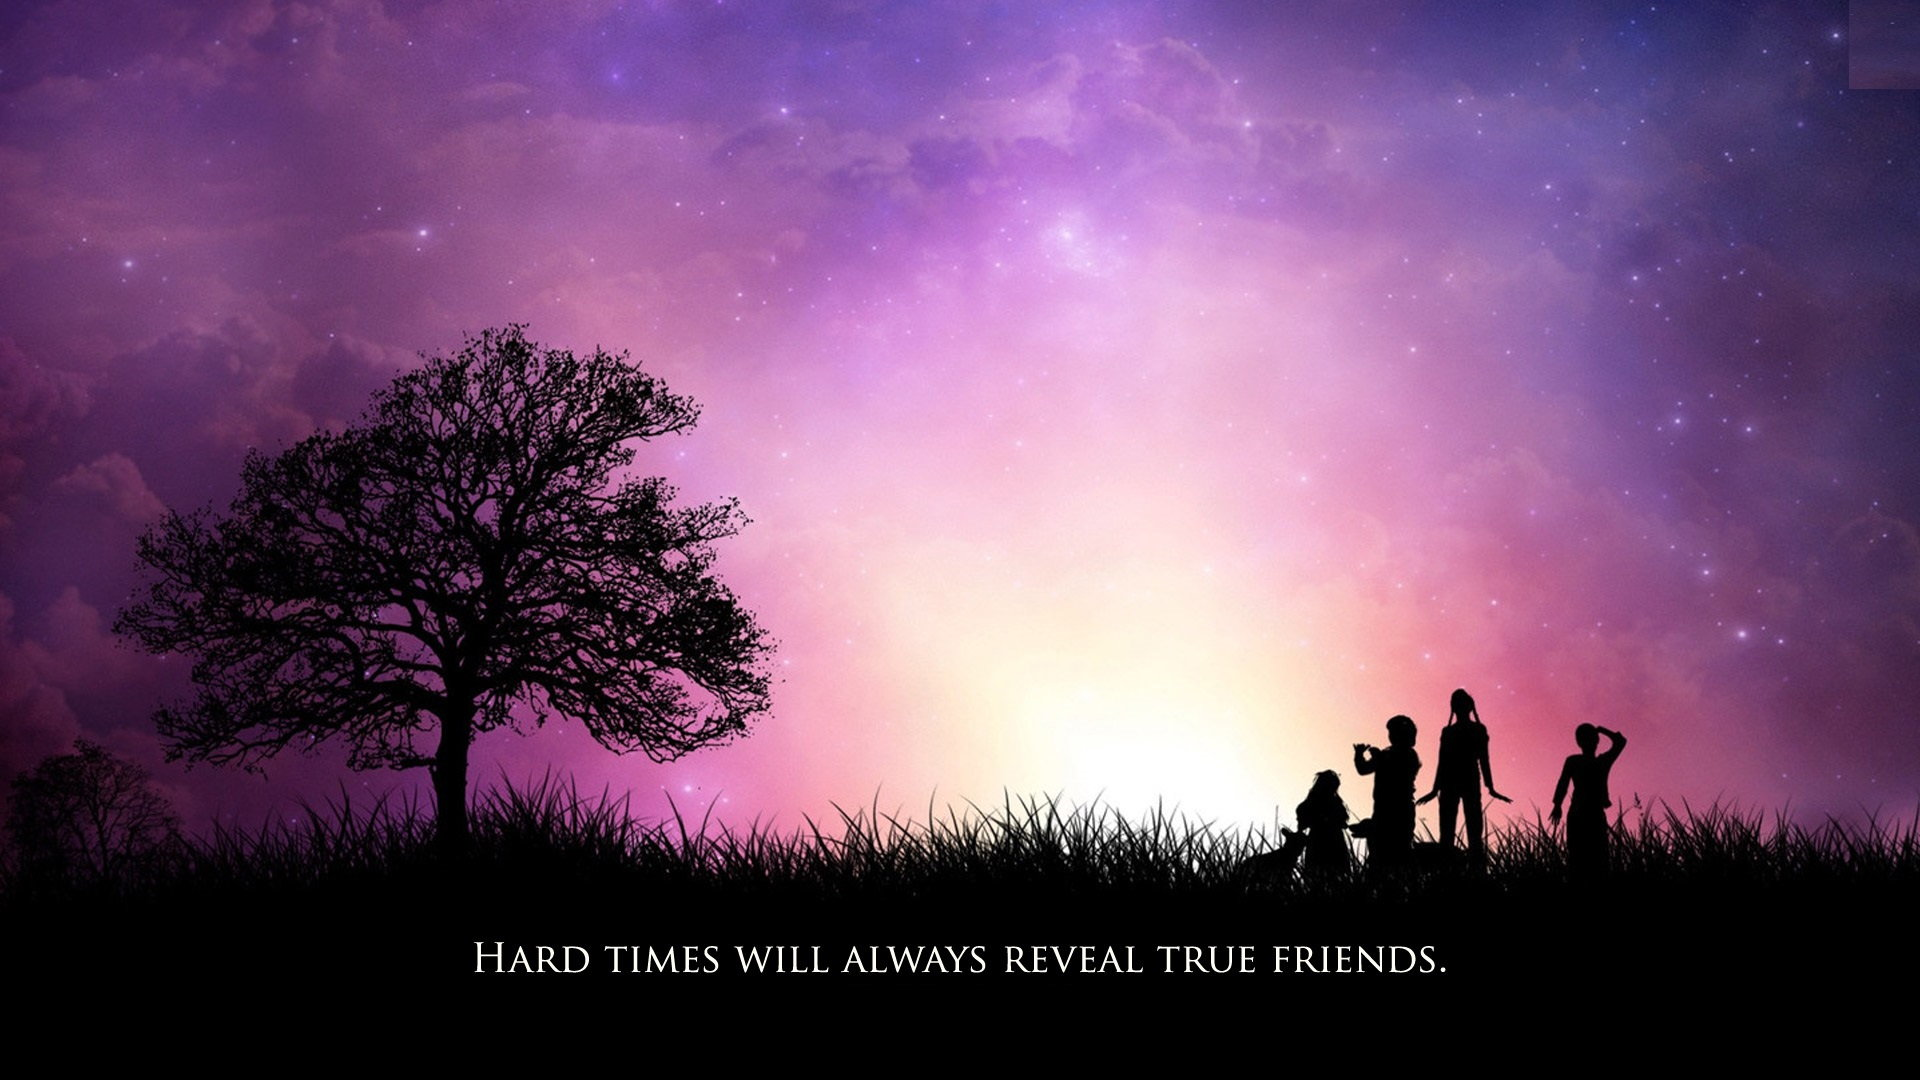 Friendship quotes hd wallpaper high definition high quality friendship quotes hd altavistaventures Image collections